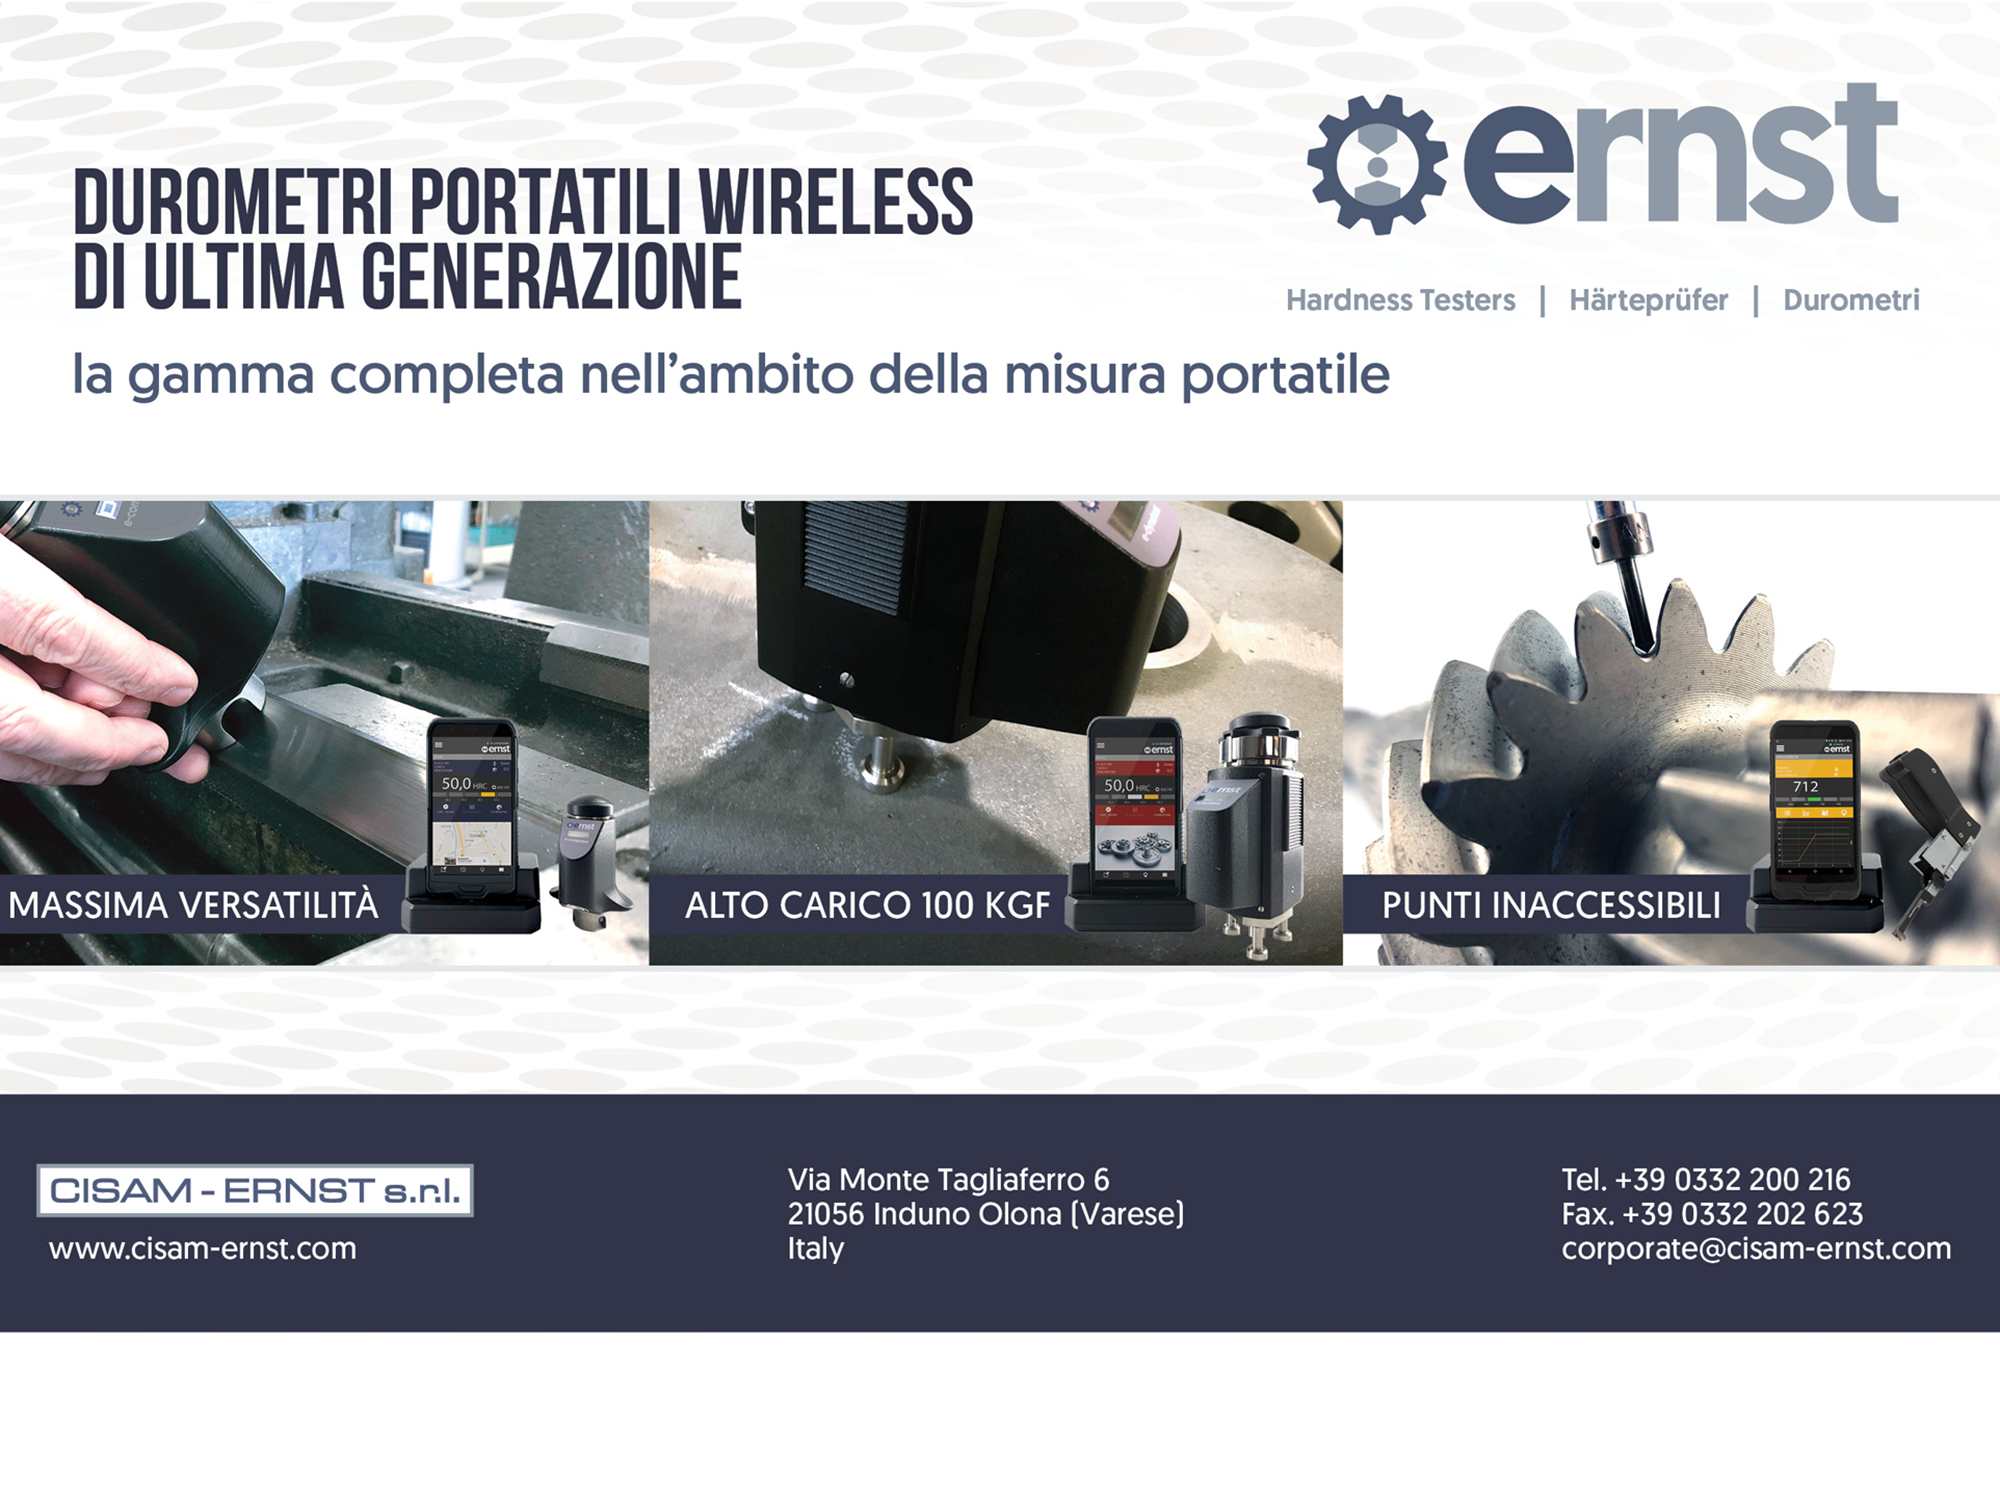 Durometri portatili wireless